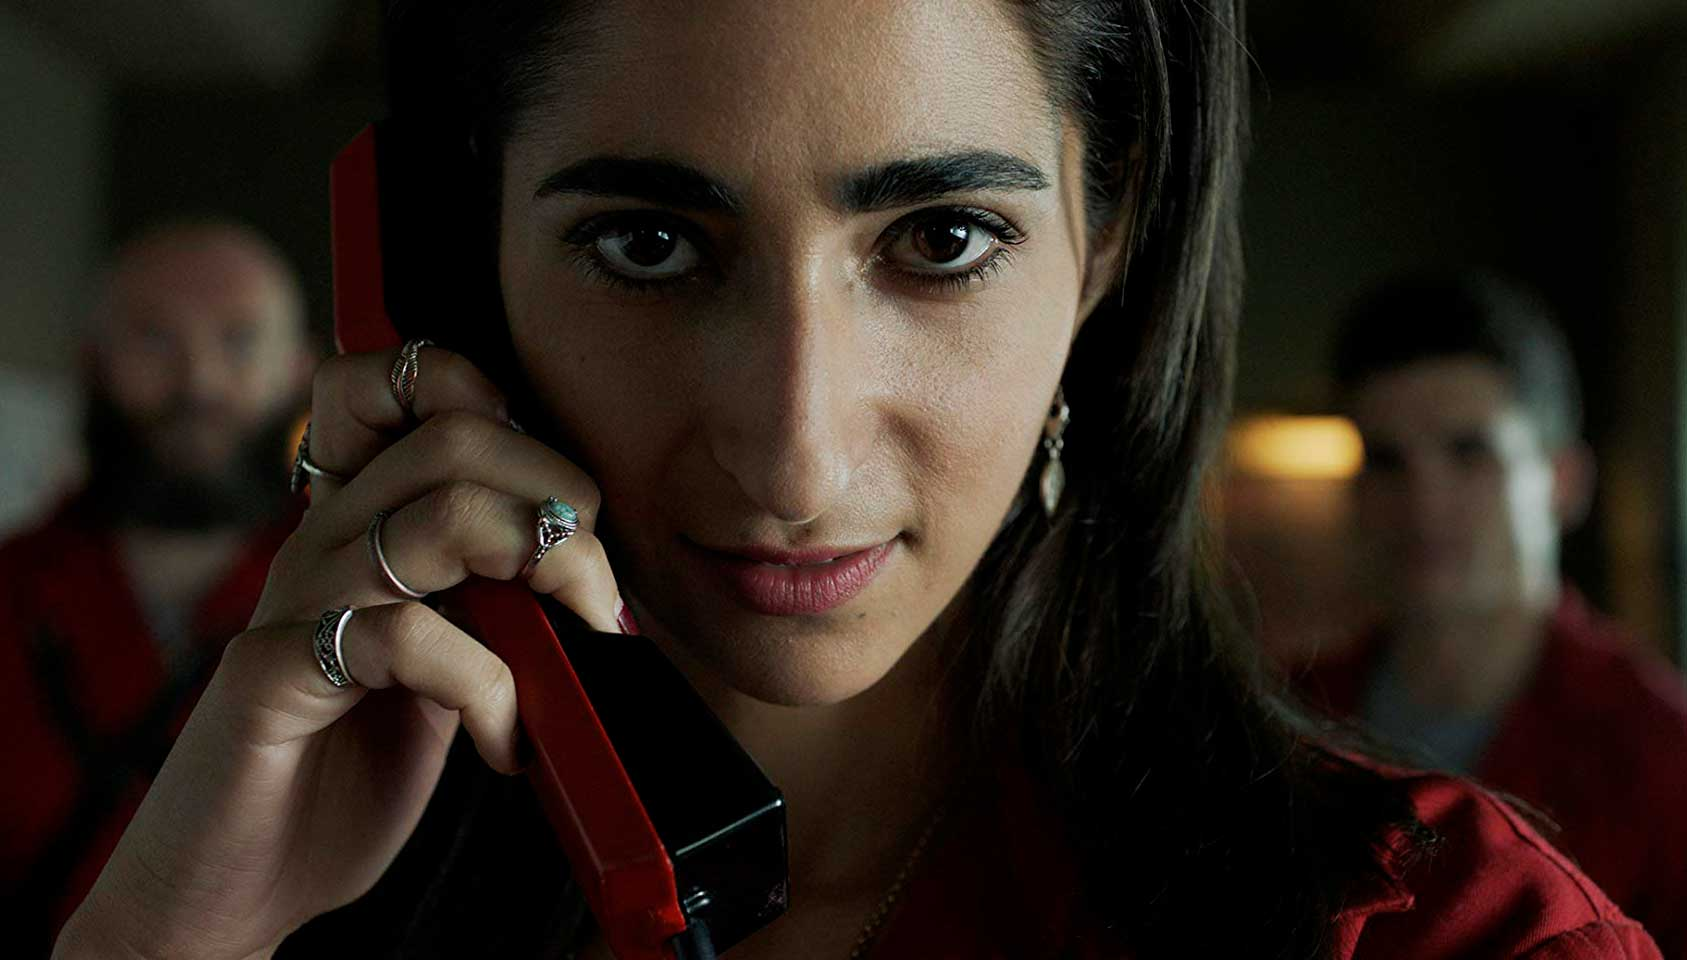 Fotos dos personagens de La Casa de Papel 11